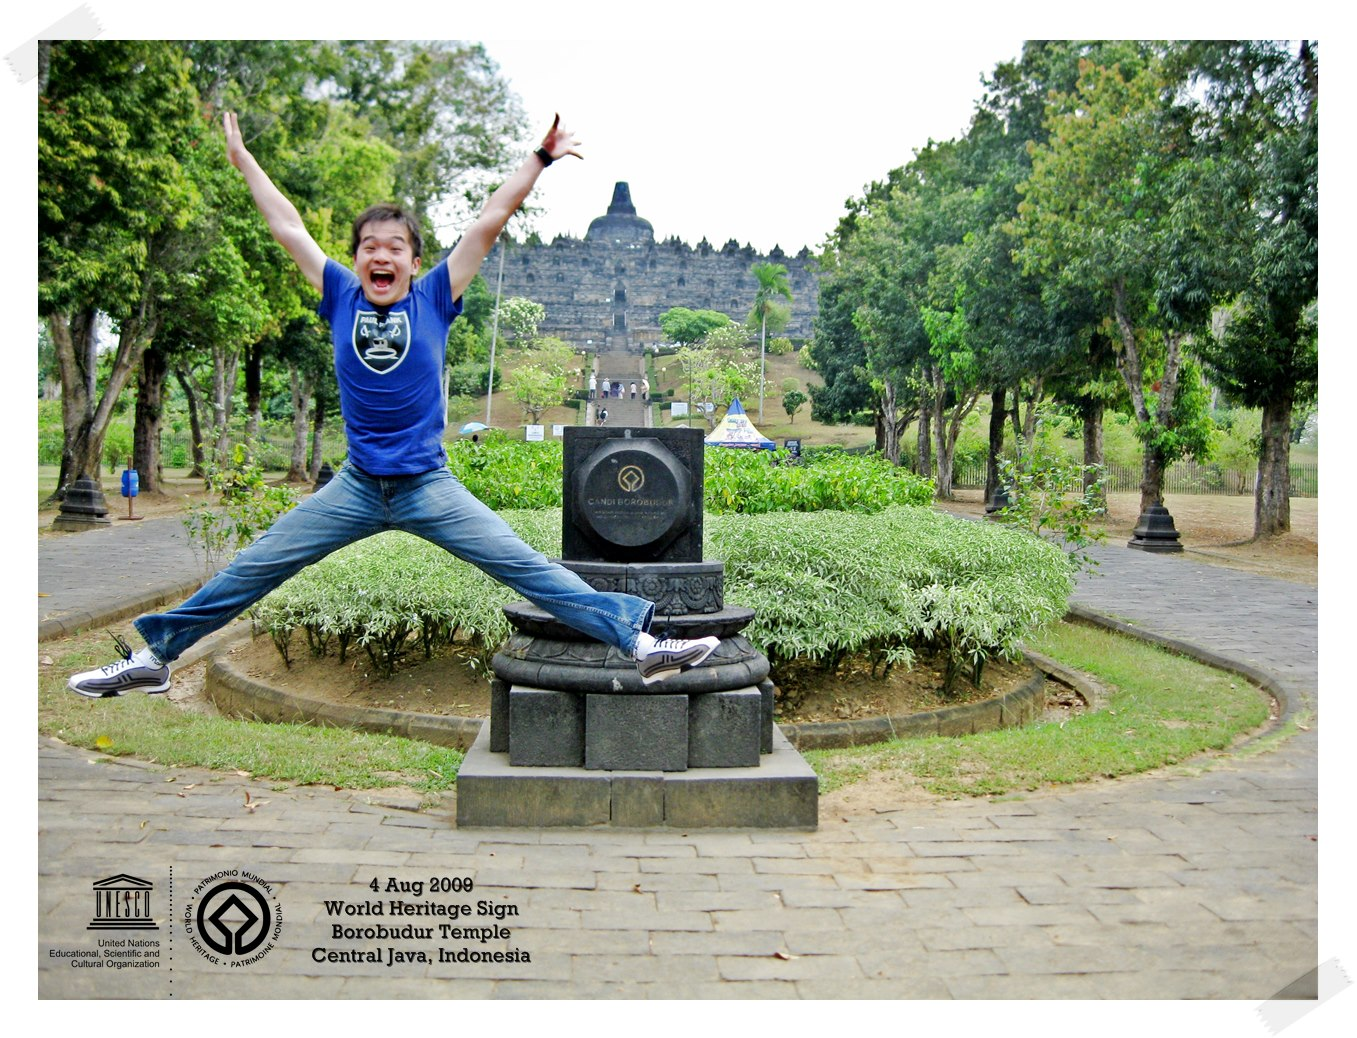 Star Jump at Borobudur Temple Borobudur Temple Compounds - Indonesia Thomas shaw